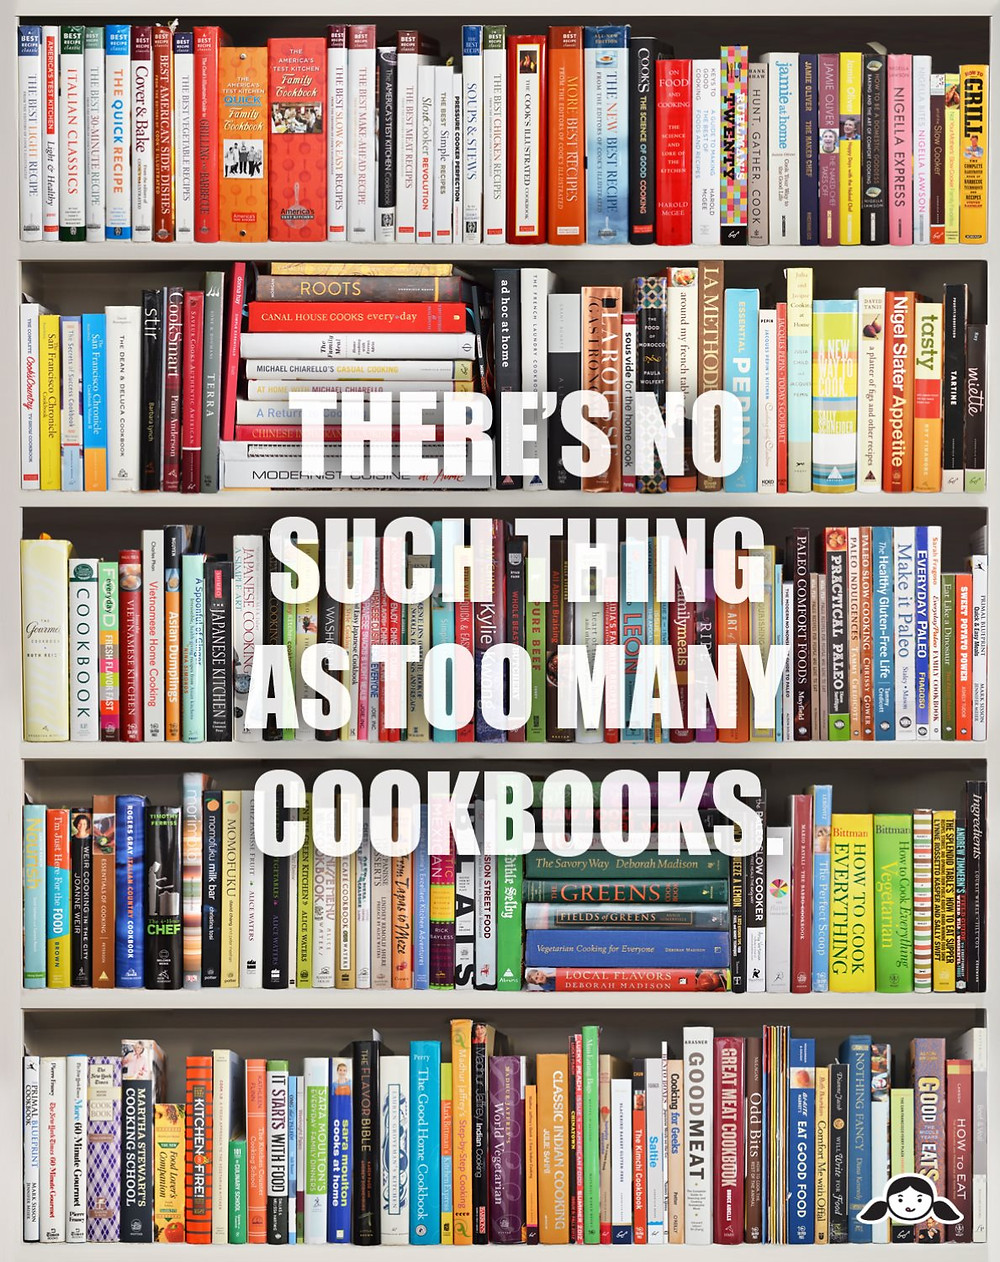 You would never cook all foods in the same way (http://4.bp.blogspot.com/-znYiIokAxa8/UWwkFLW6YwI/AAAAAAAAH1k/RCTHekjdqRA/s1600/Bookshelf1500b.jpg)